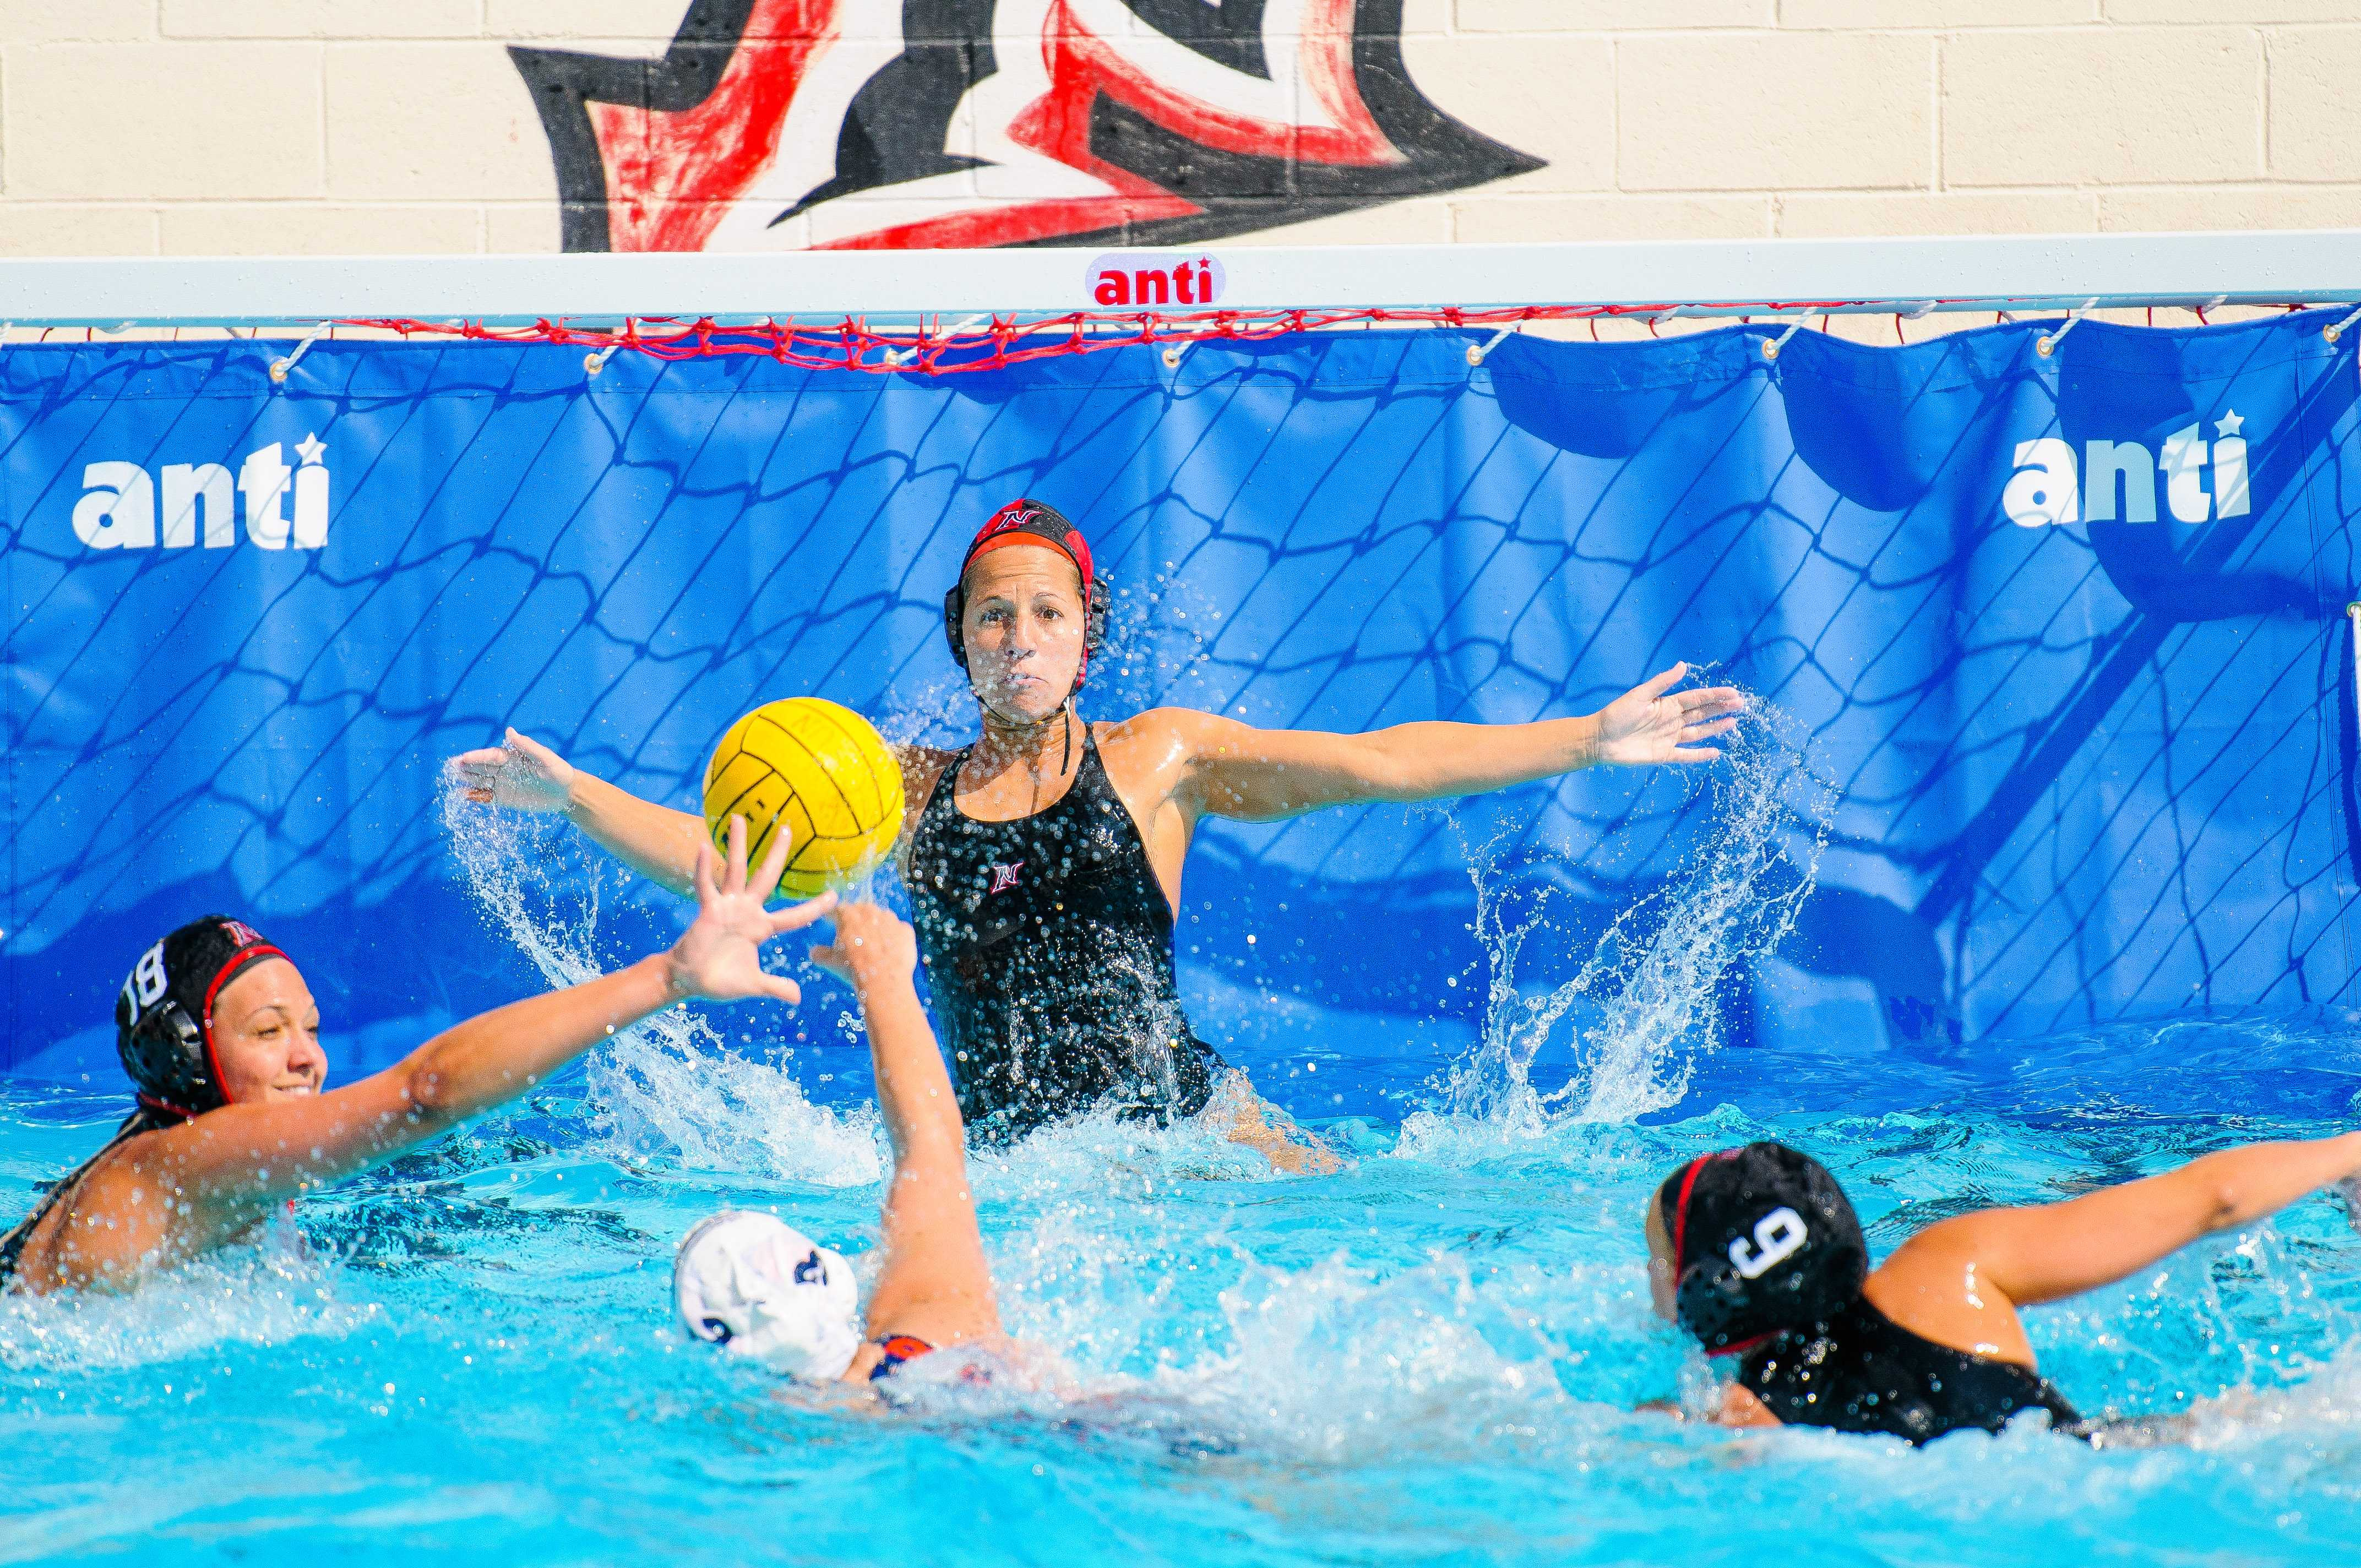 CSUN goalkeeper Dana Harvery protects her net during a game. Harvey only tallied four saves in the Matadors' loss to UC Irvine in the semi-finals of the Big West Conference Tournament Saturday afternoon.Courtesy of CSUN CSUN Athletics.